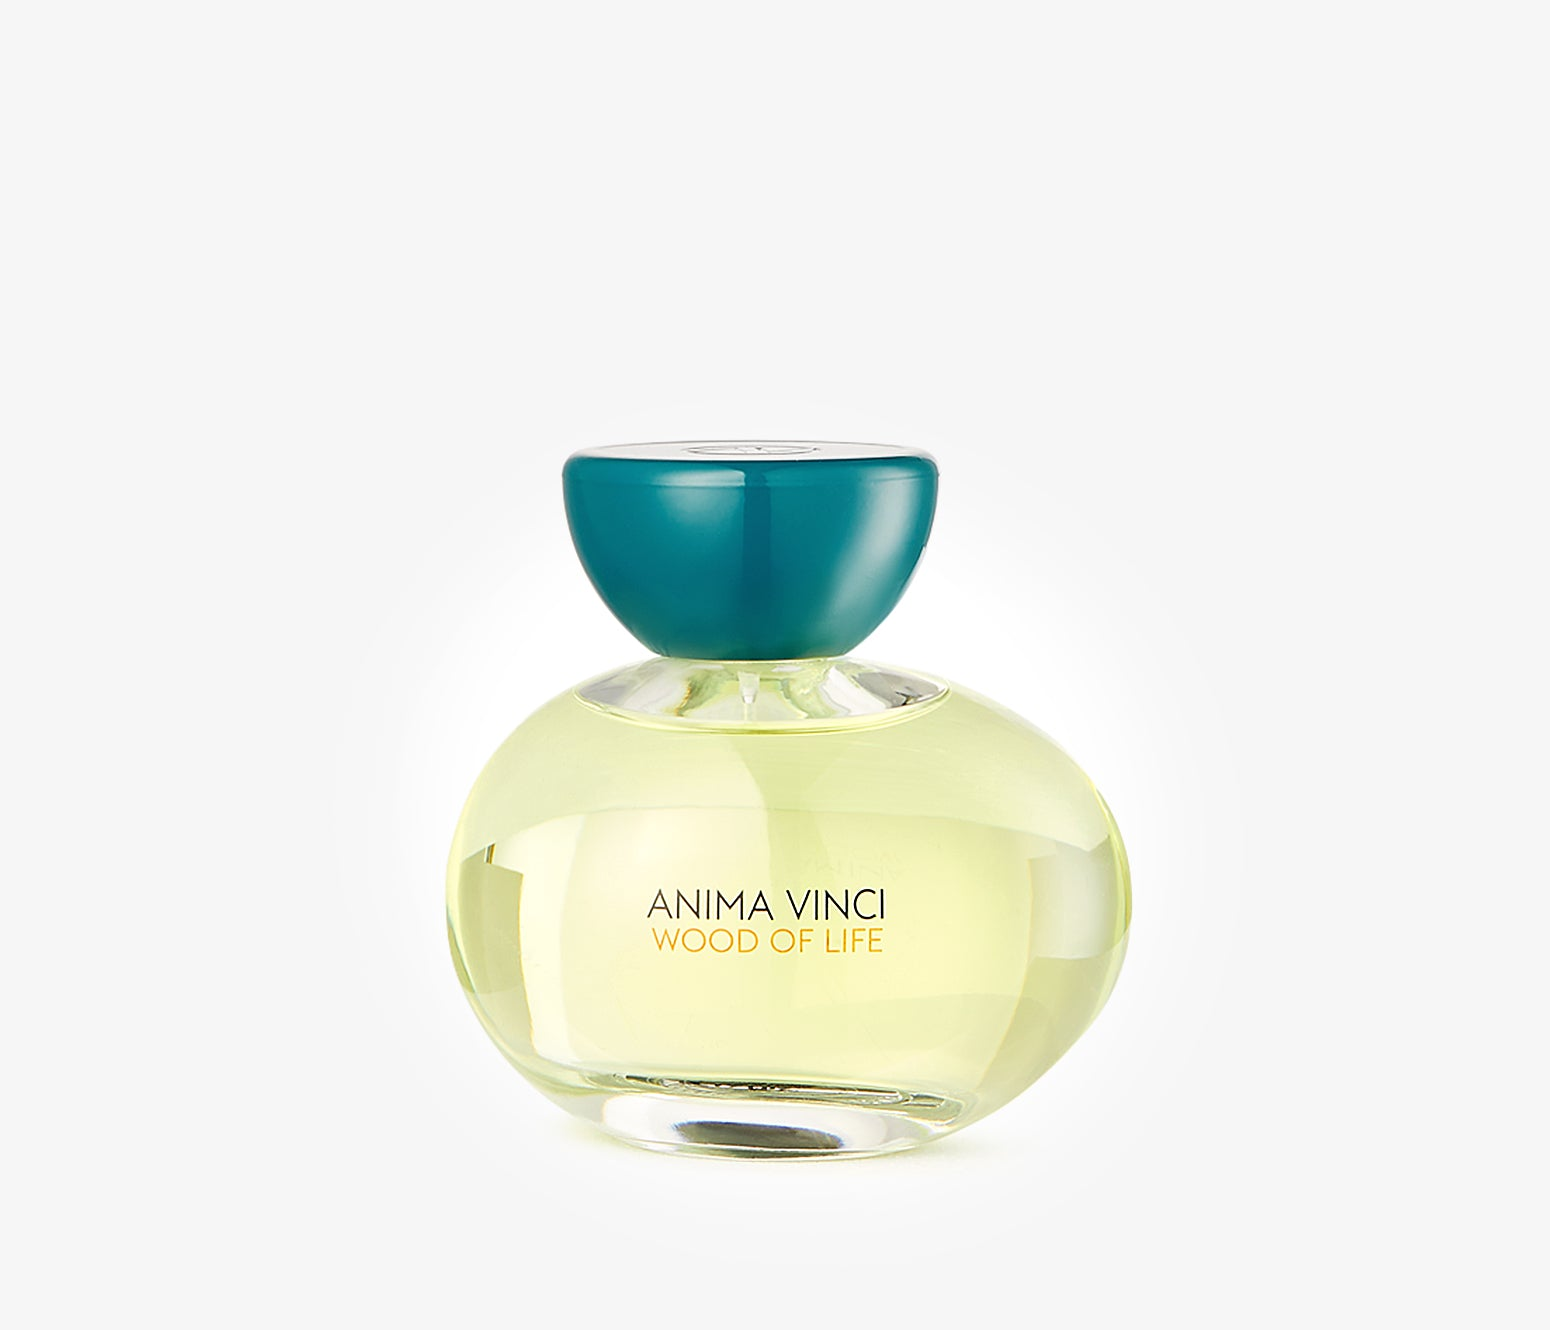 Anima Vinci - Wood of Life - 100ml - REN001 - product image - Fragrance - Les Senteurs